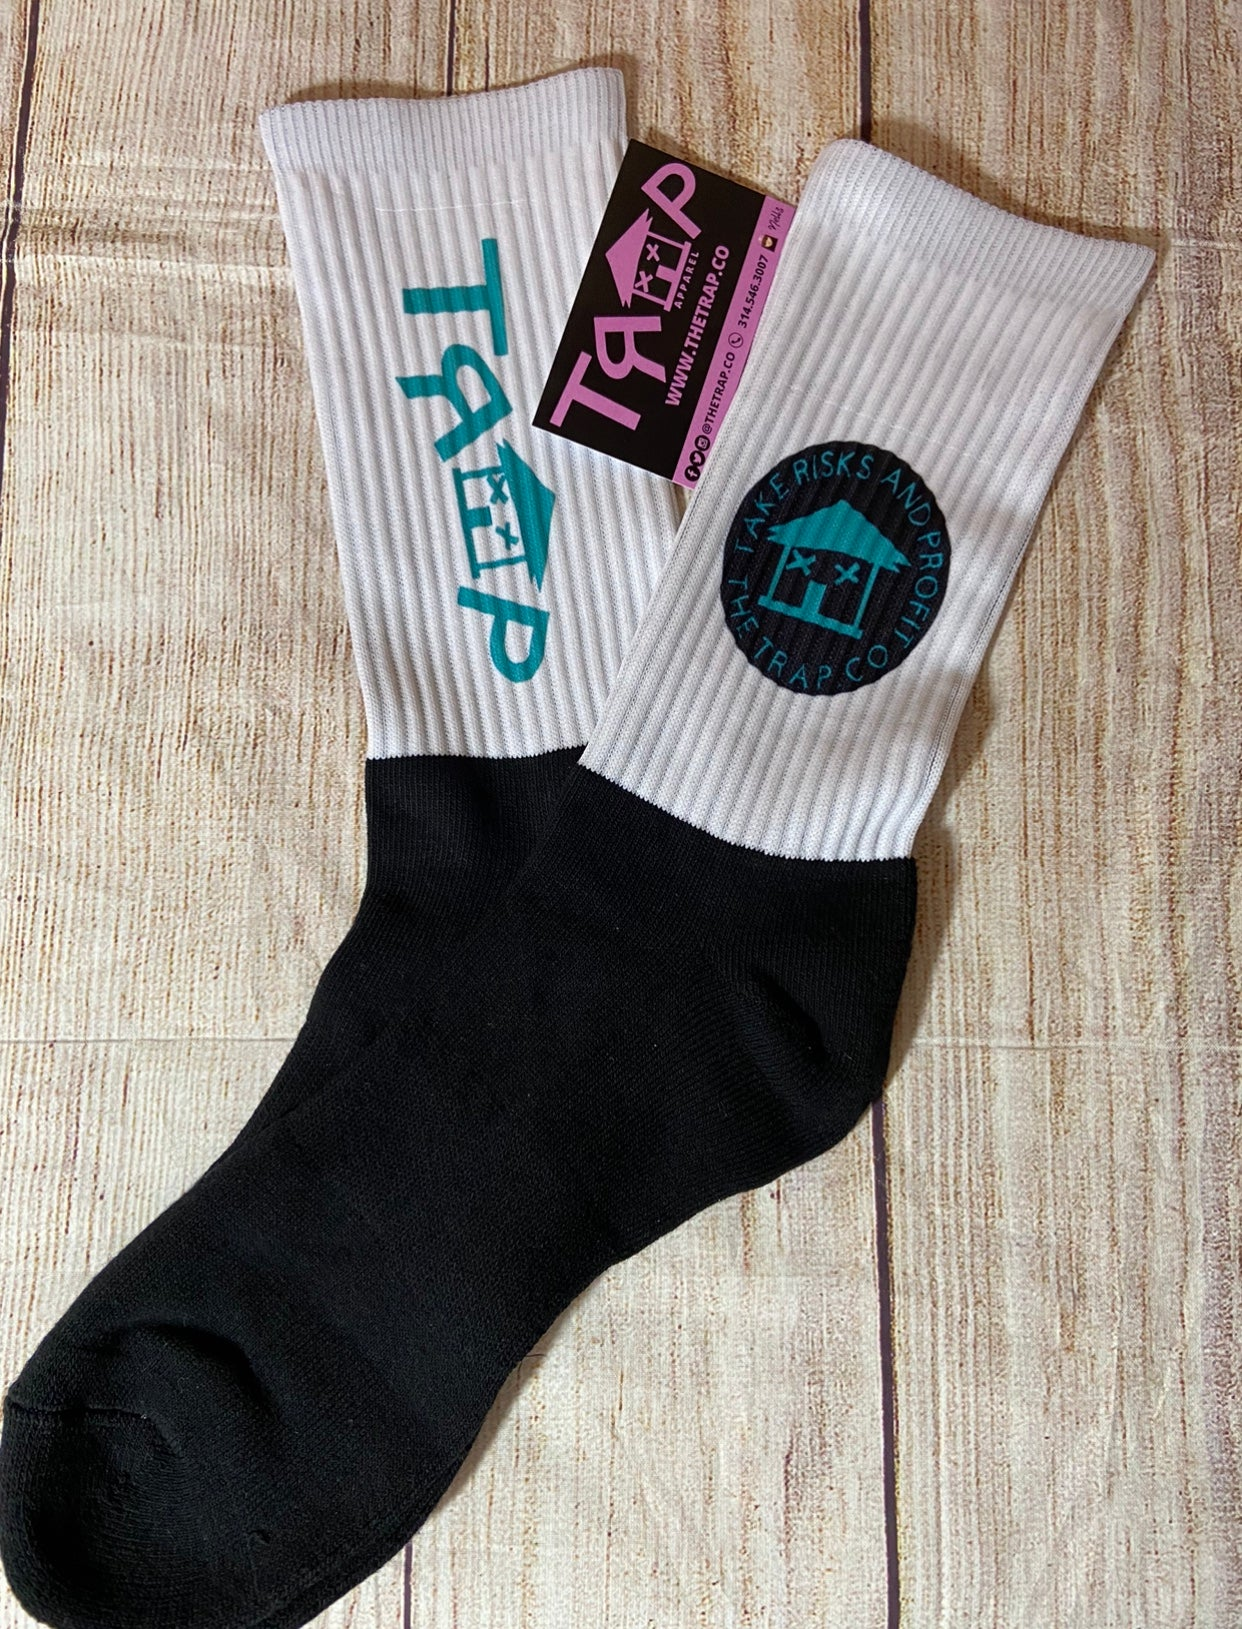 TRAP SOCKS - Teal